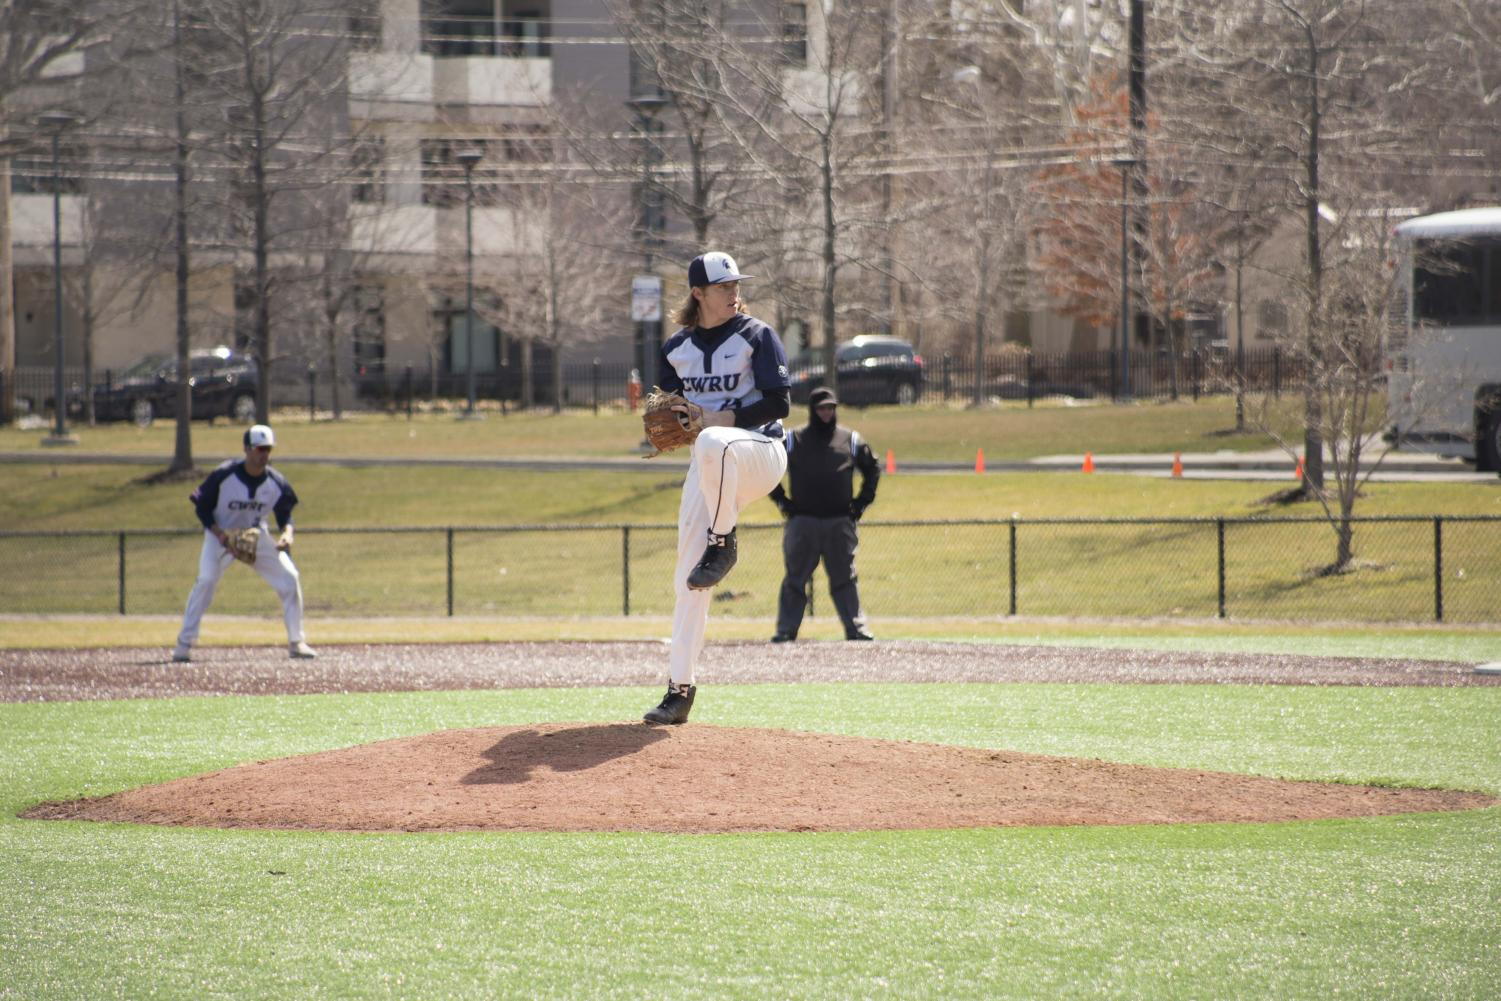 With a perfect mix of scoring and lights-out pitching, the baseball team has been exceeding expectations, garnering a No. 13 ranking in Division III.